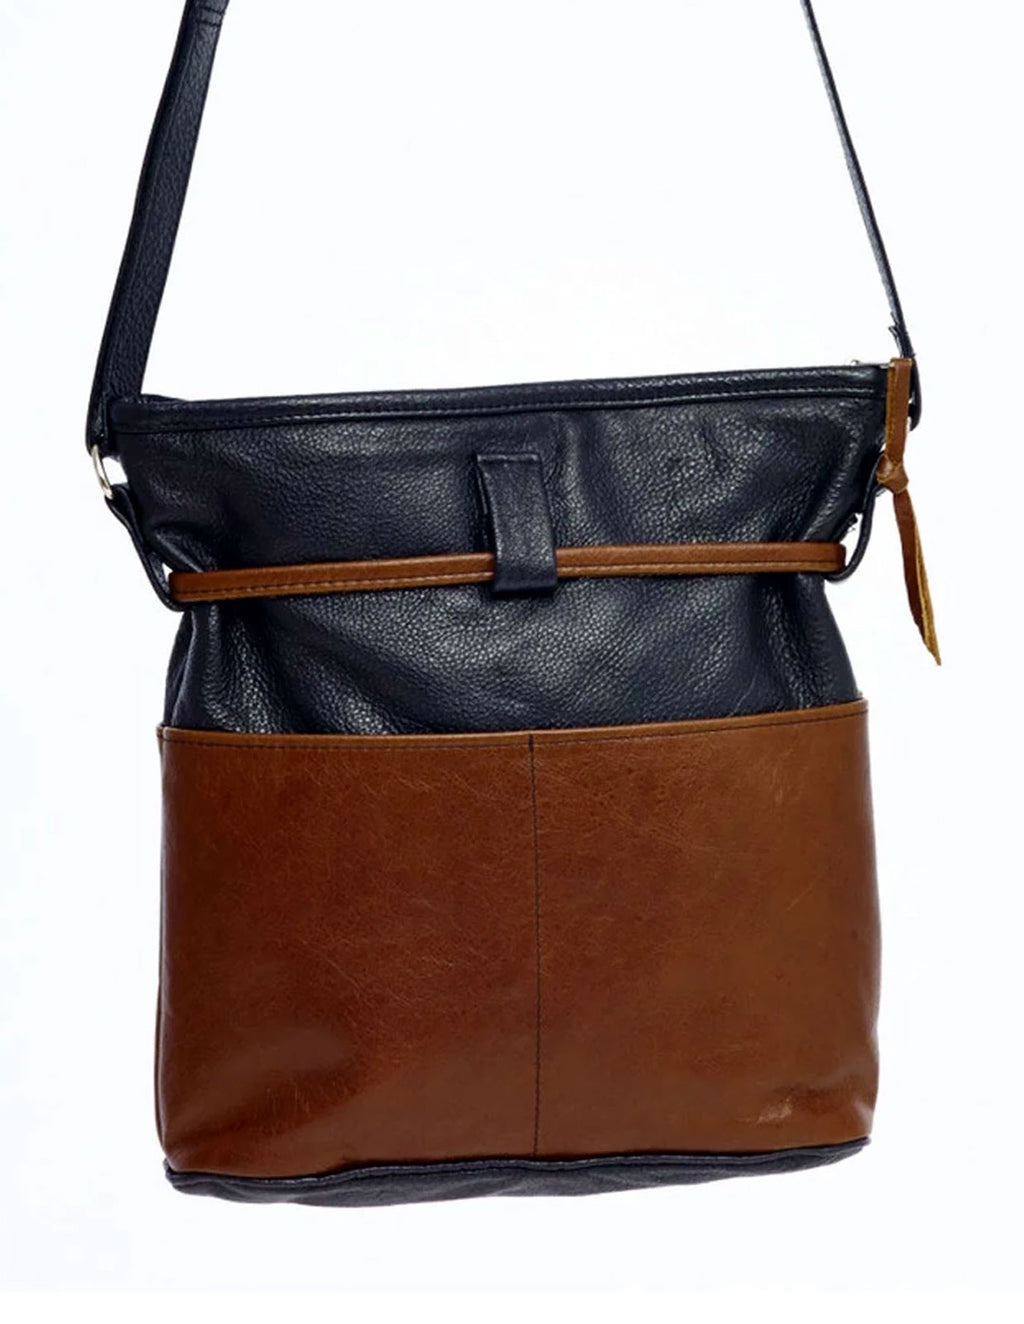 Four-Pocket Purse - Indian Summer's designer leather purses